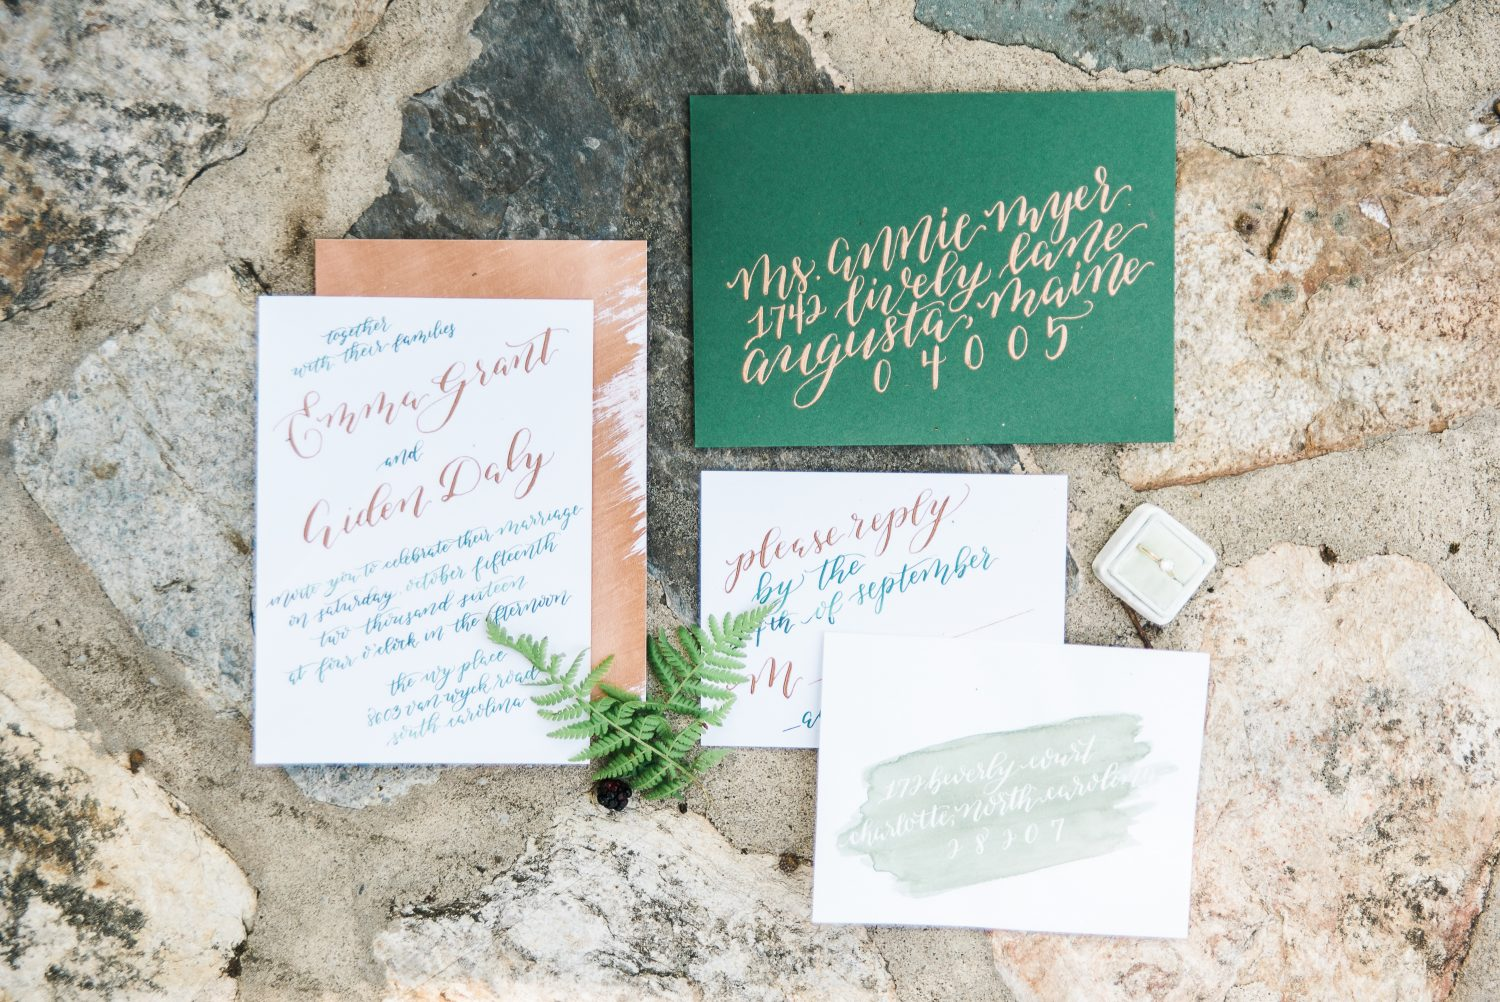 Green wedding invitation envelope with copper calligraphy.